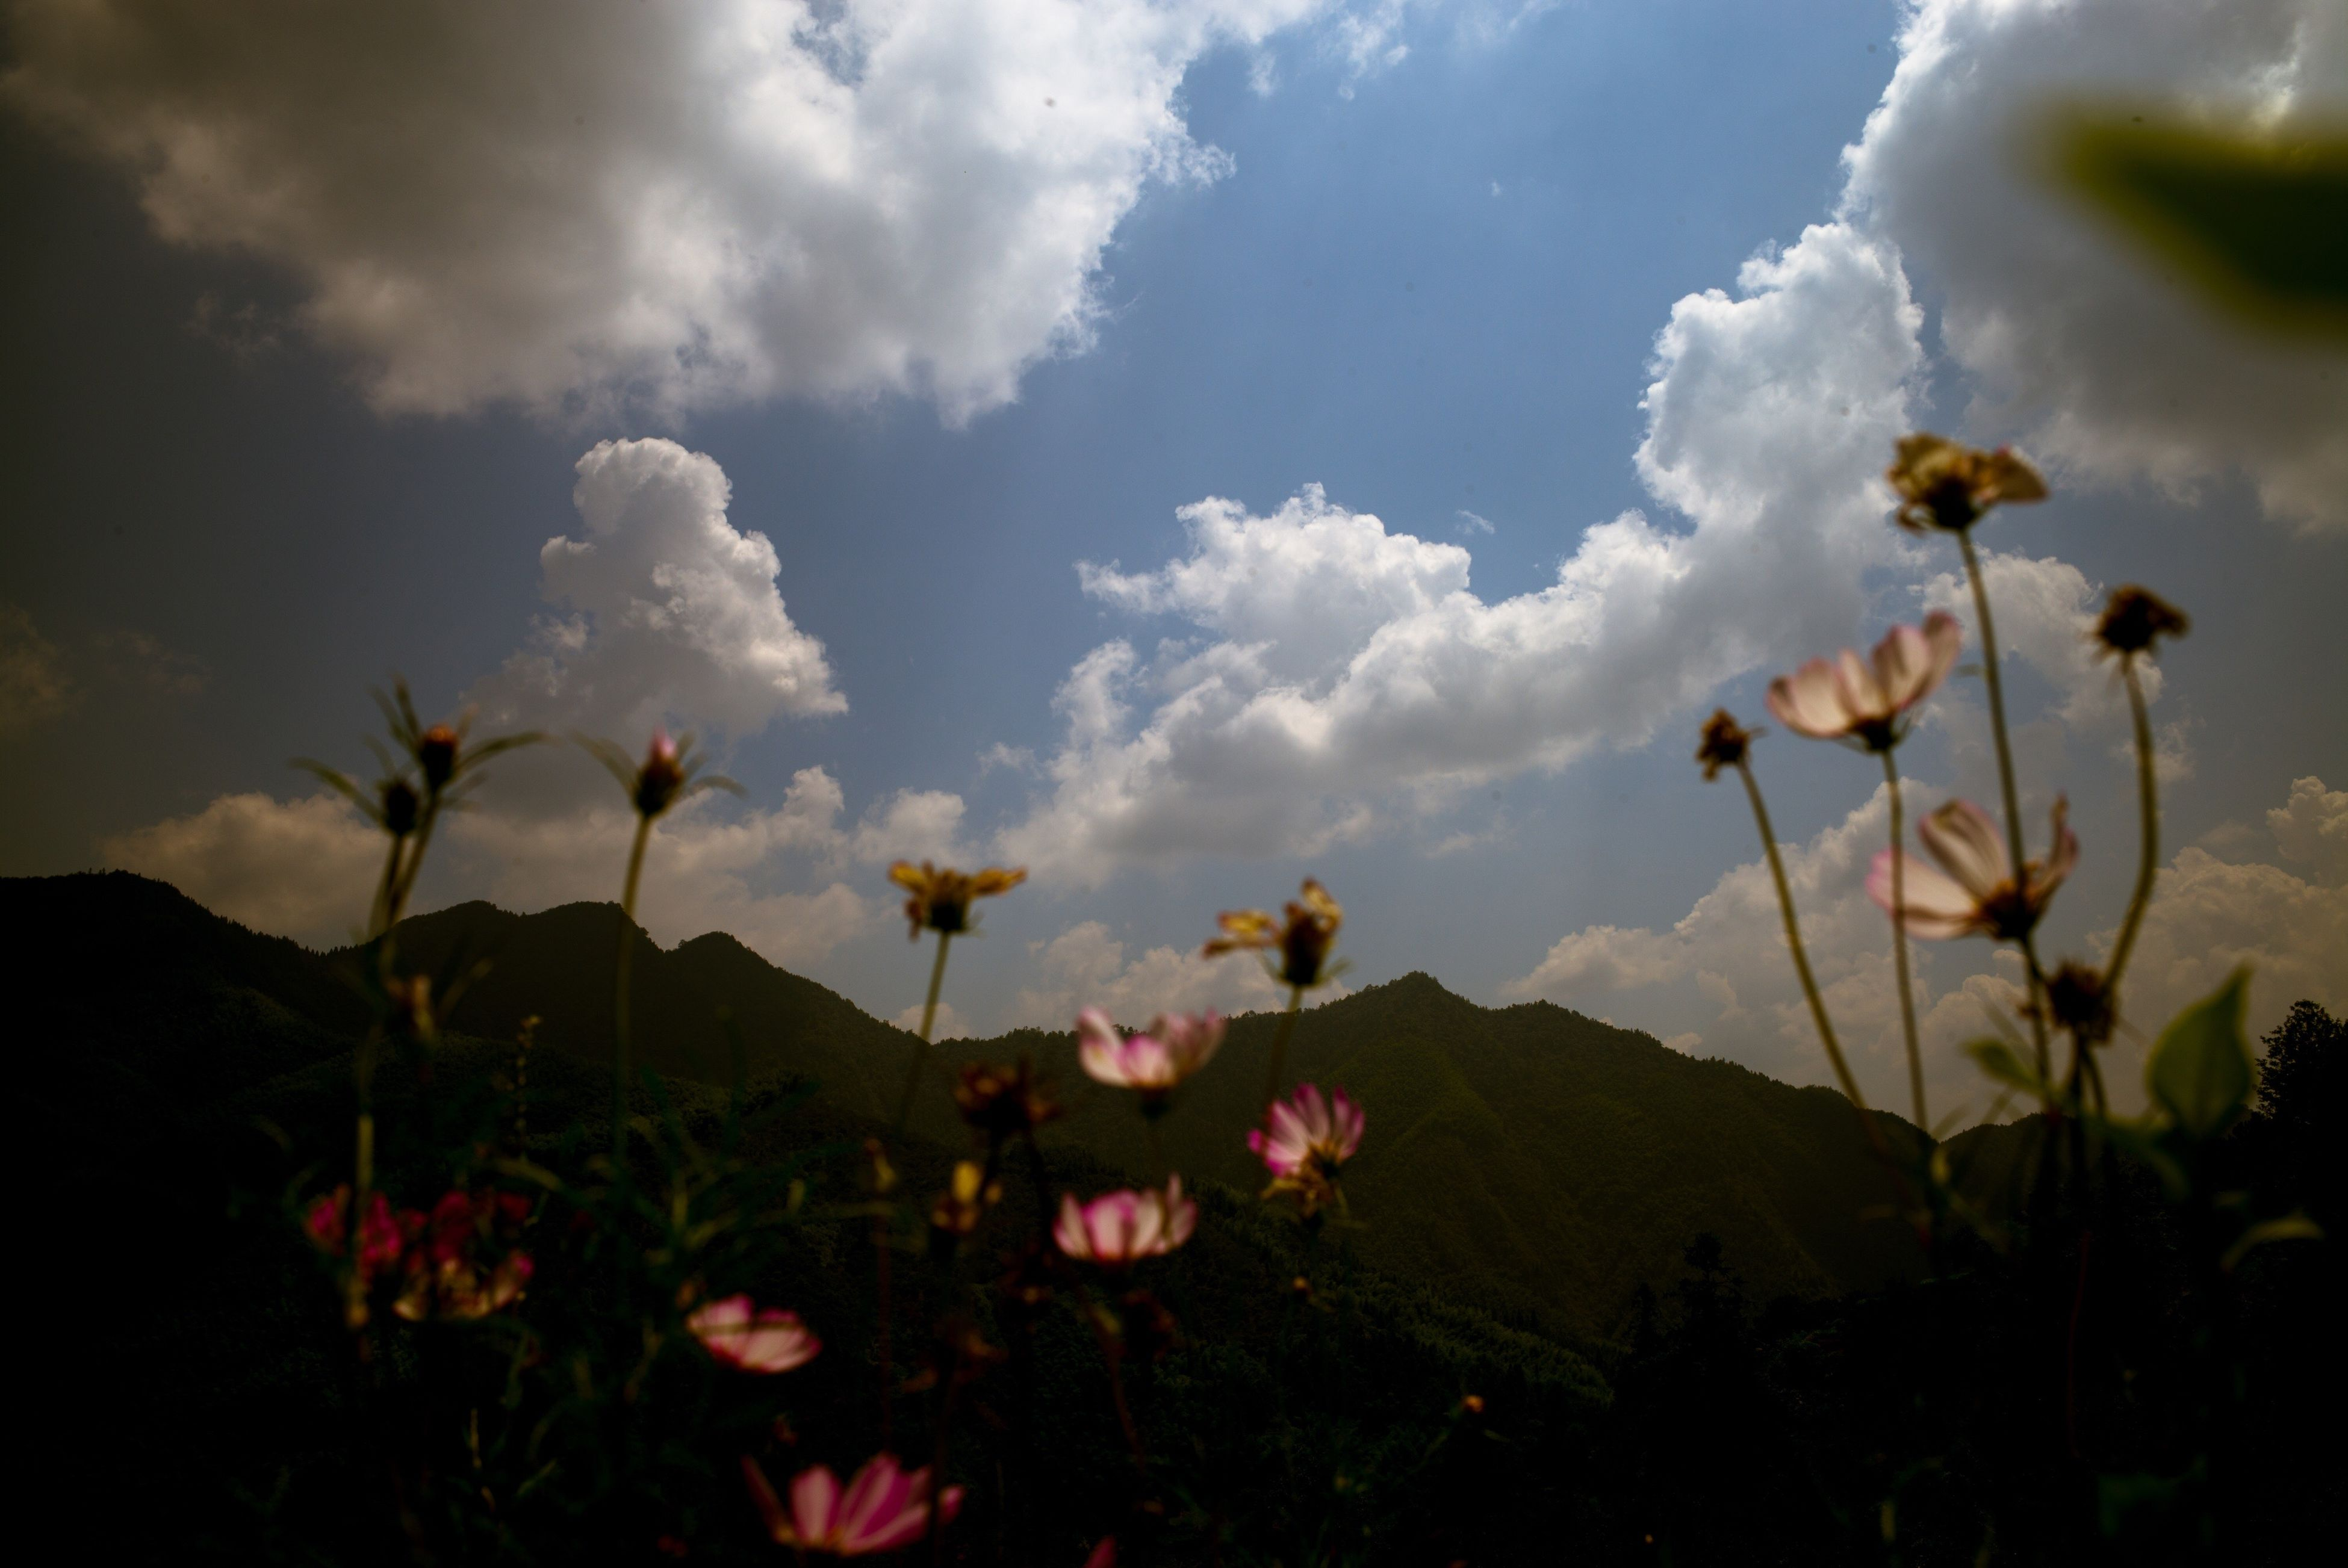 flower, freshness, fragility, growth, beauty in nature, sky, petal, plant, nature, cloud, in bloom, mountain, blossom, field, springtime, pink color, flower head, cloud - sky, day, outdoors, blooming, mountain range, scenics, no people, flowering plant, botany, growing